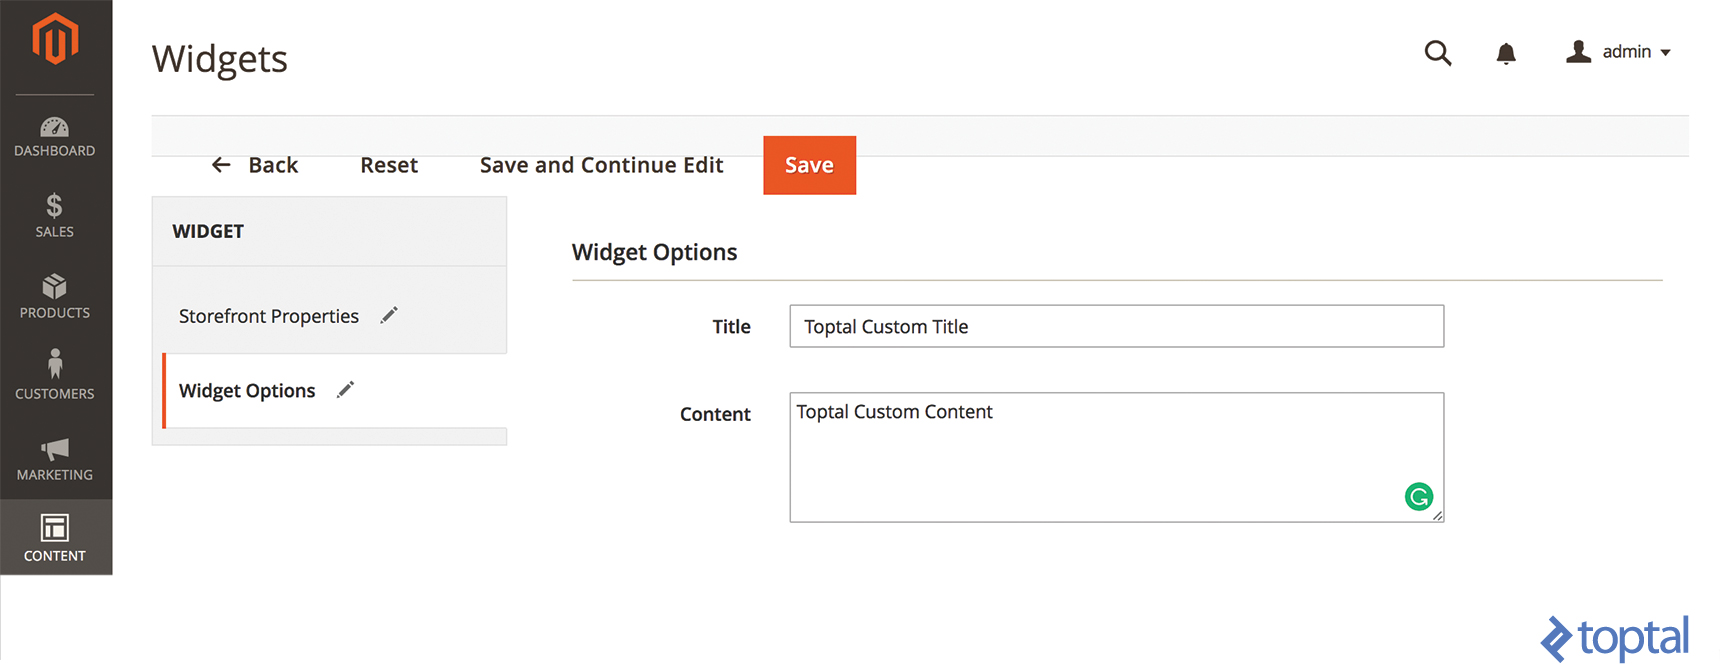 Toptal Custom Title and Toptal Custom Content input in Magento 2 Widget Options